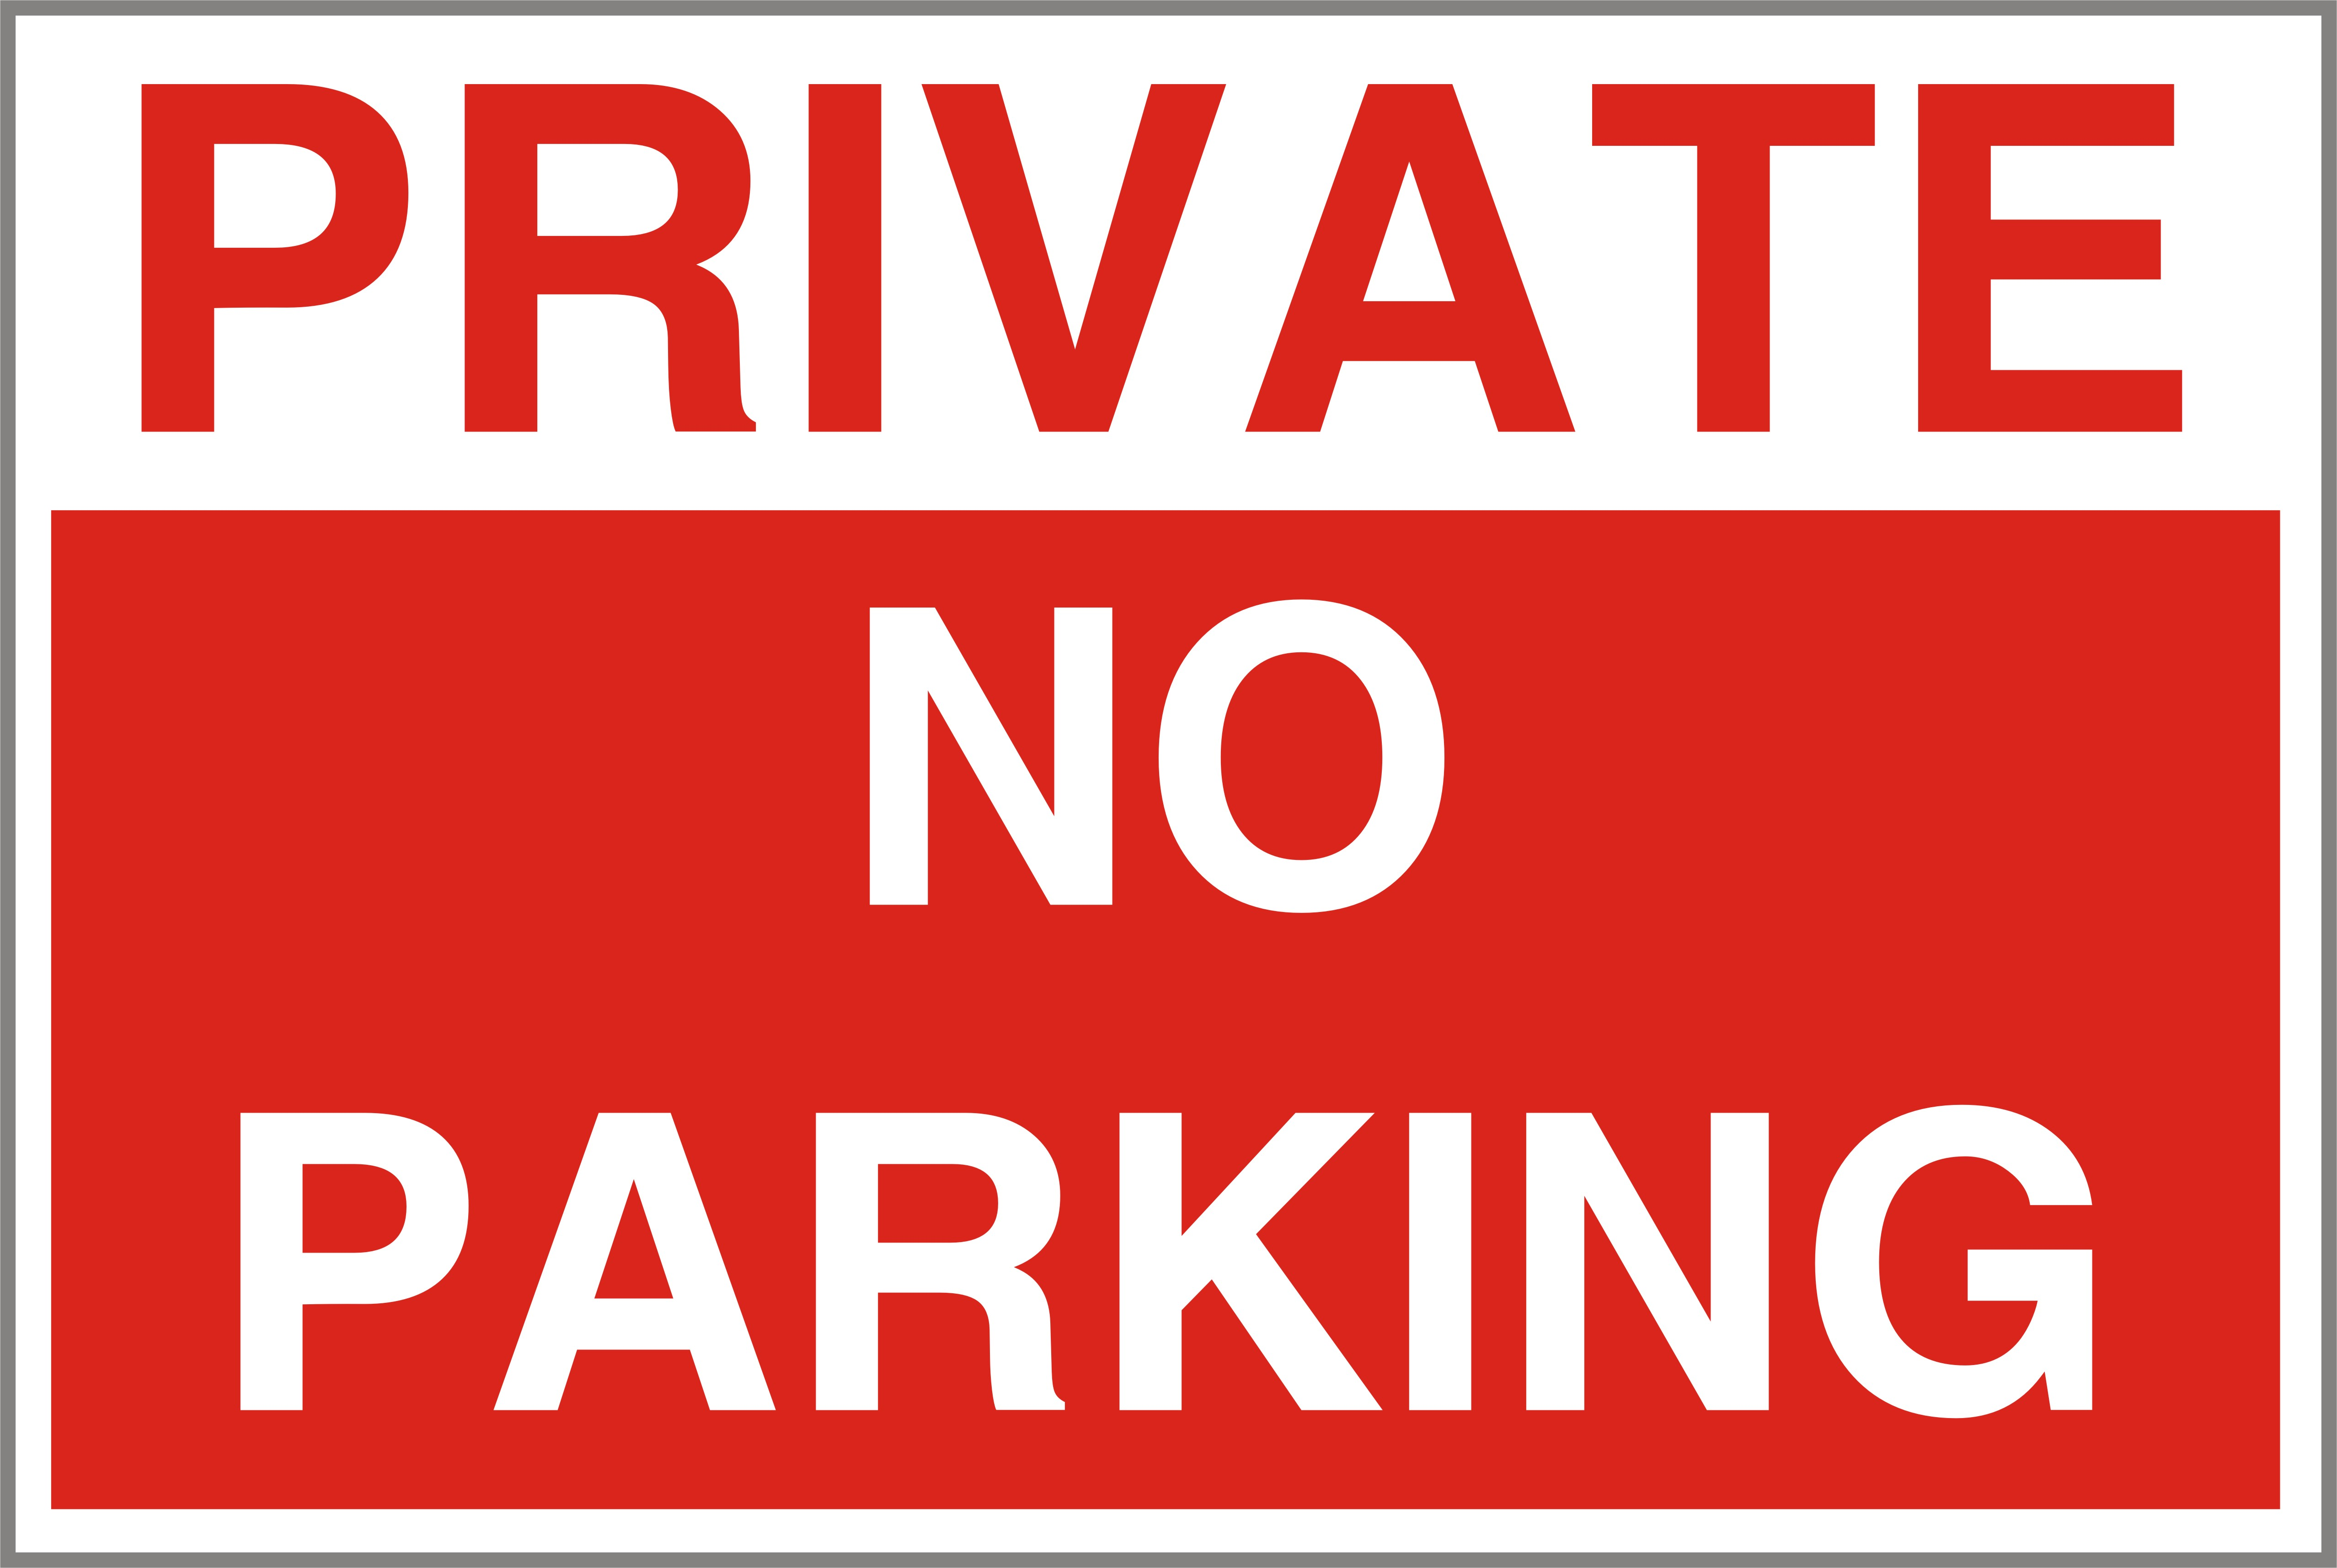 It's just a picture of Critical Printable No Parking Sign